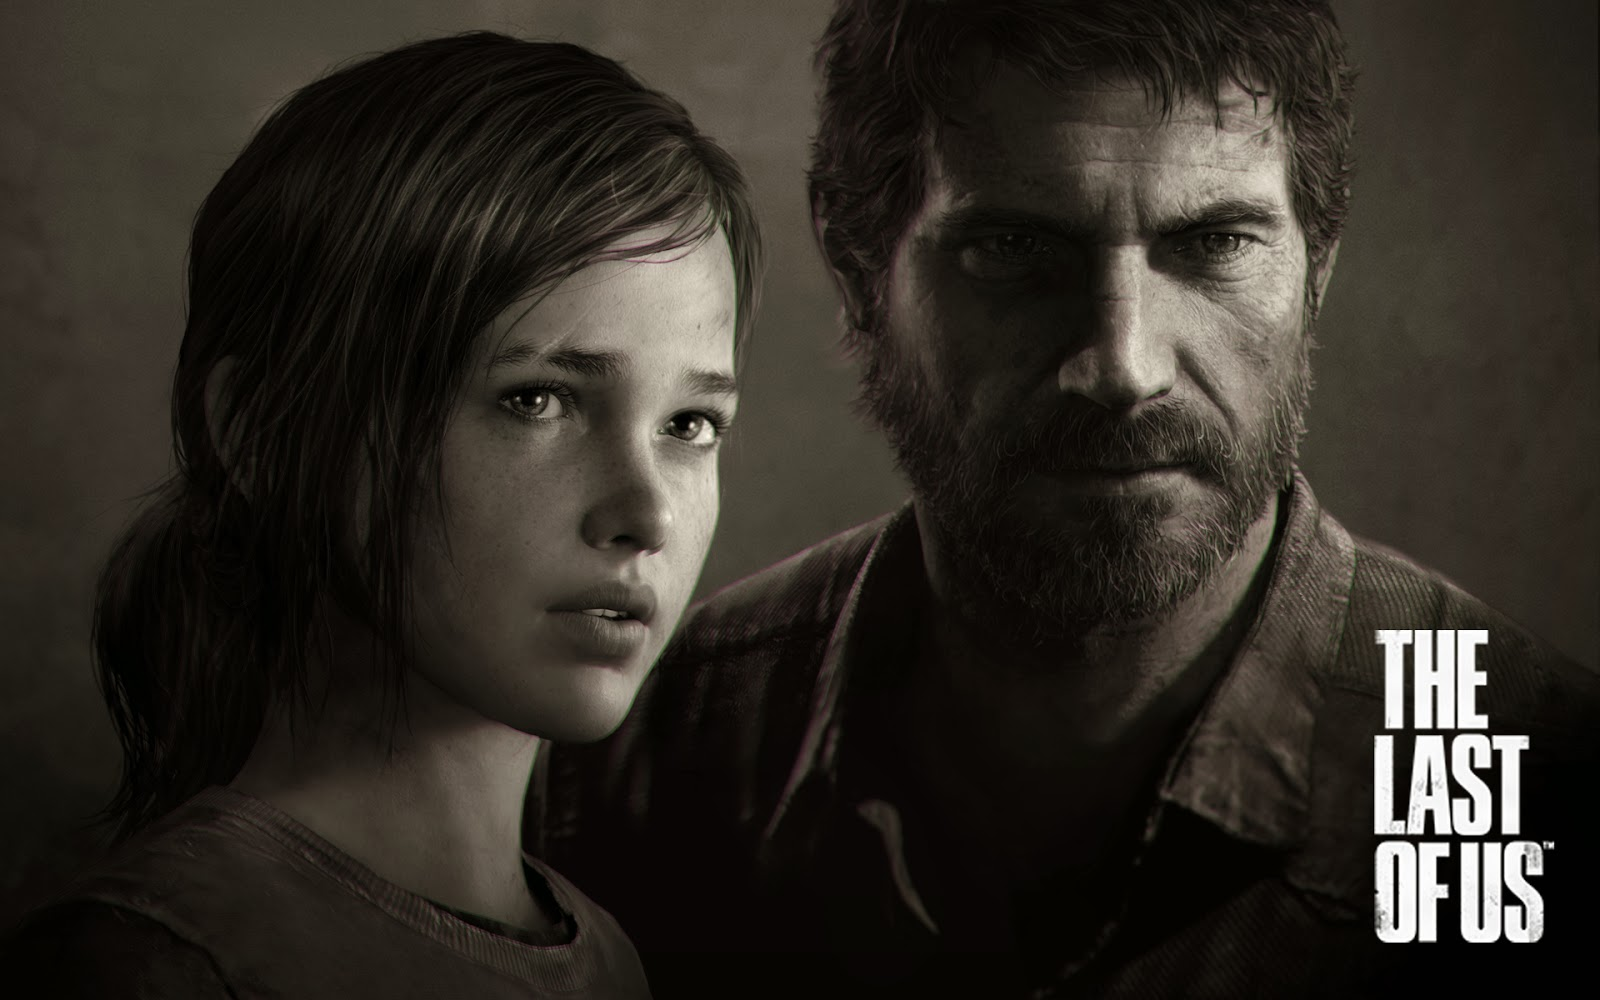 by a few strokes of good fortune i ended up with a ps3 this summer and the first game i wanted to play on it was the last of us which had